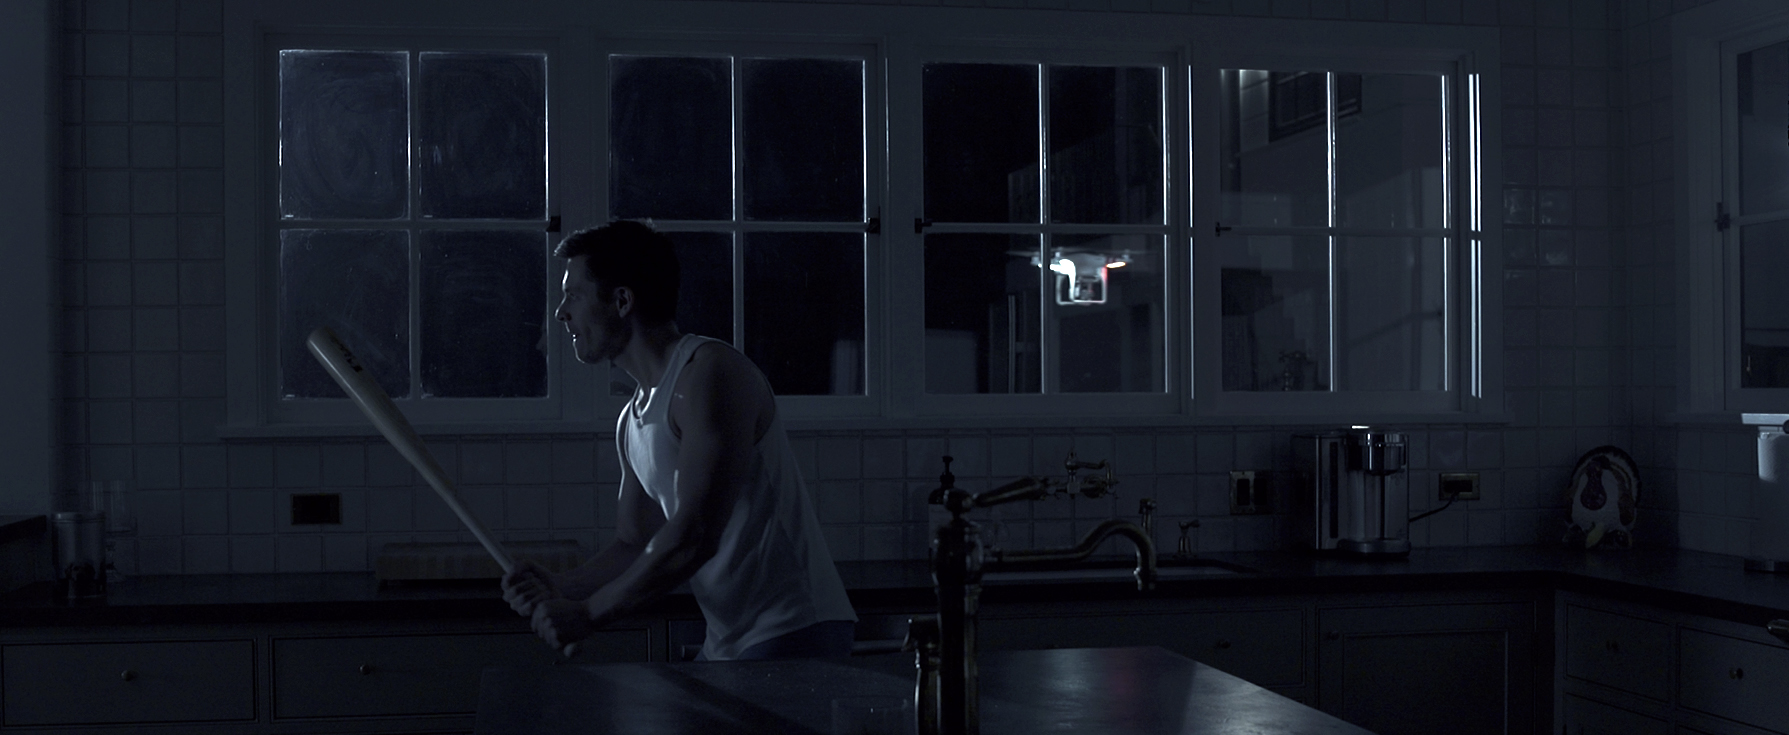 Sony A7s Drone Short